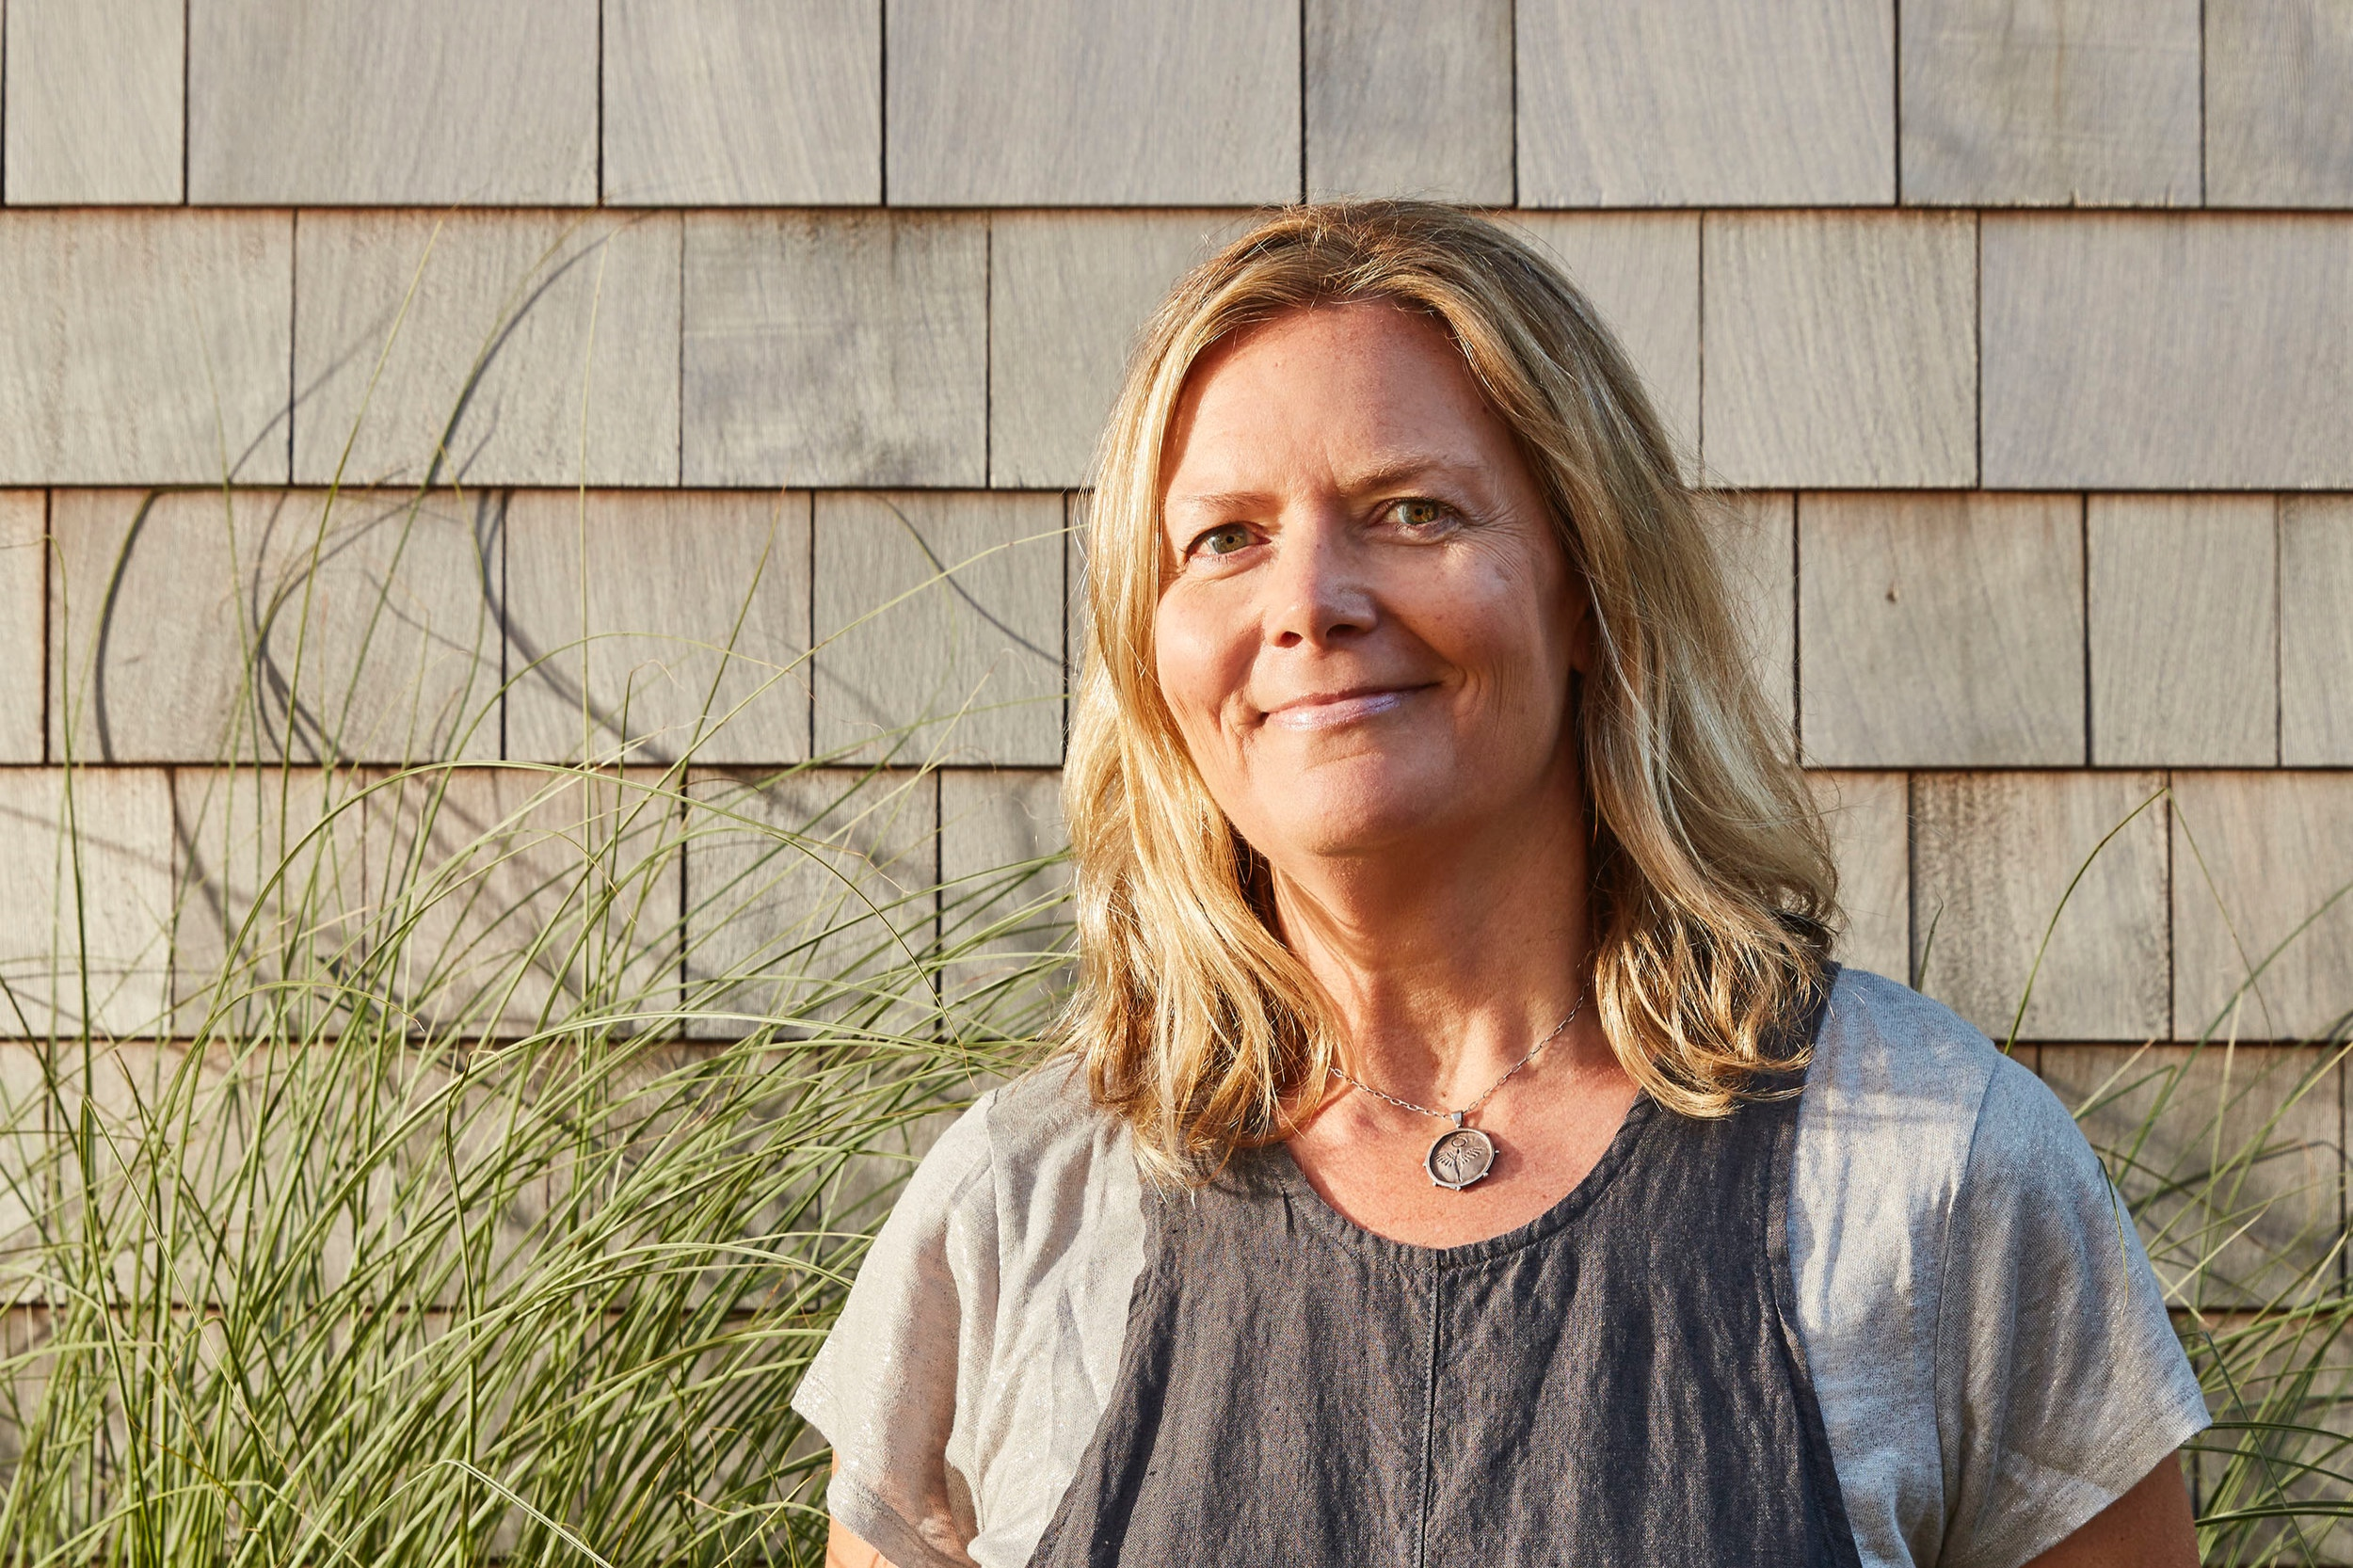 """Paula Disbrowe    Paula writes about the endless adventure of food and travel. Her stories have taken her to vanilla plantations in French Polynesia, single malt distilleries in Scotland, olive groves in Spain, and salmon boats in Alaska. She is a frequent contributor to Southern Living, Food & Wine, The Local Palate, and Texas Highways, among other national publications.  Disbrowe has written seven cookbooks, including her forthcoming book, """"Thank You For Smoking"""" (Ten Speed Press, March 2019) and """"Any Night Grilling"""" for Food52 (Ten Speed Press, March 2018). Her first book, """"Cowgirl Cuisine,"""" chronicles the adventure of leaving New York City to cook on a ranch in The Texas Hill Country. She has co-written four other cookbooks, """"Crescent City Cooking"""" with Susan Spicer, chef at Bayona restaurant in New Orleans and """"Real Cajun"""" with Donald Link, the acclaimed chef of Herbsaint and Cochon restaurants in New Orleans, which won the prestigious James Beard Award for Best American Cookbook. """"Down South,"""" her second collaboration with Link, was published 2014 and won the International Association of Culinary Professionals Award for Best American Cookbook."""